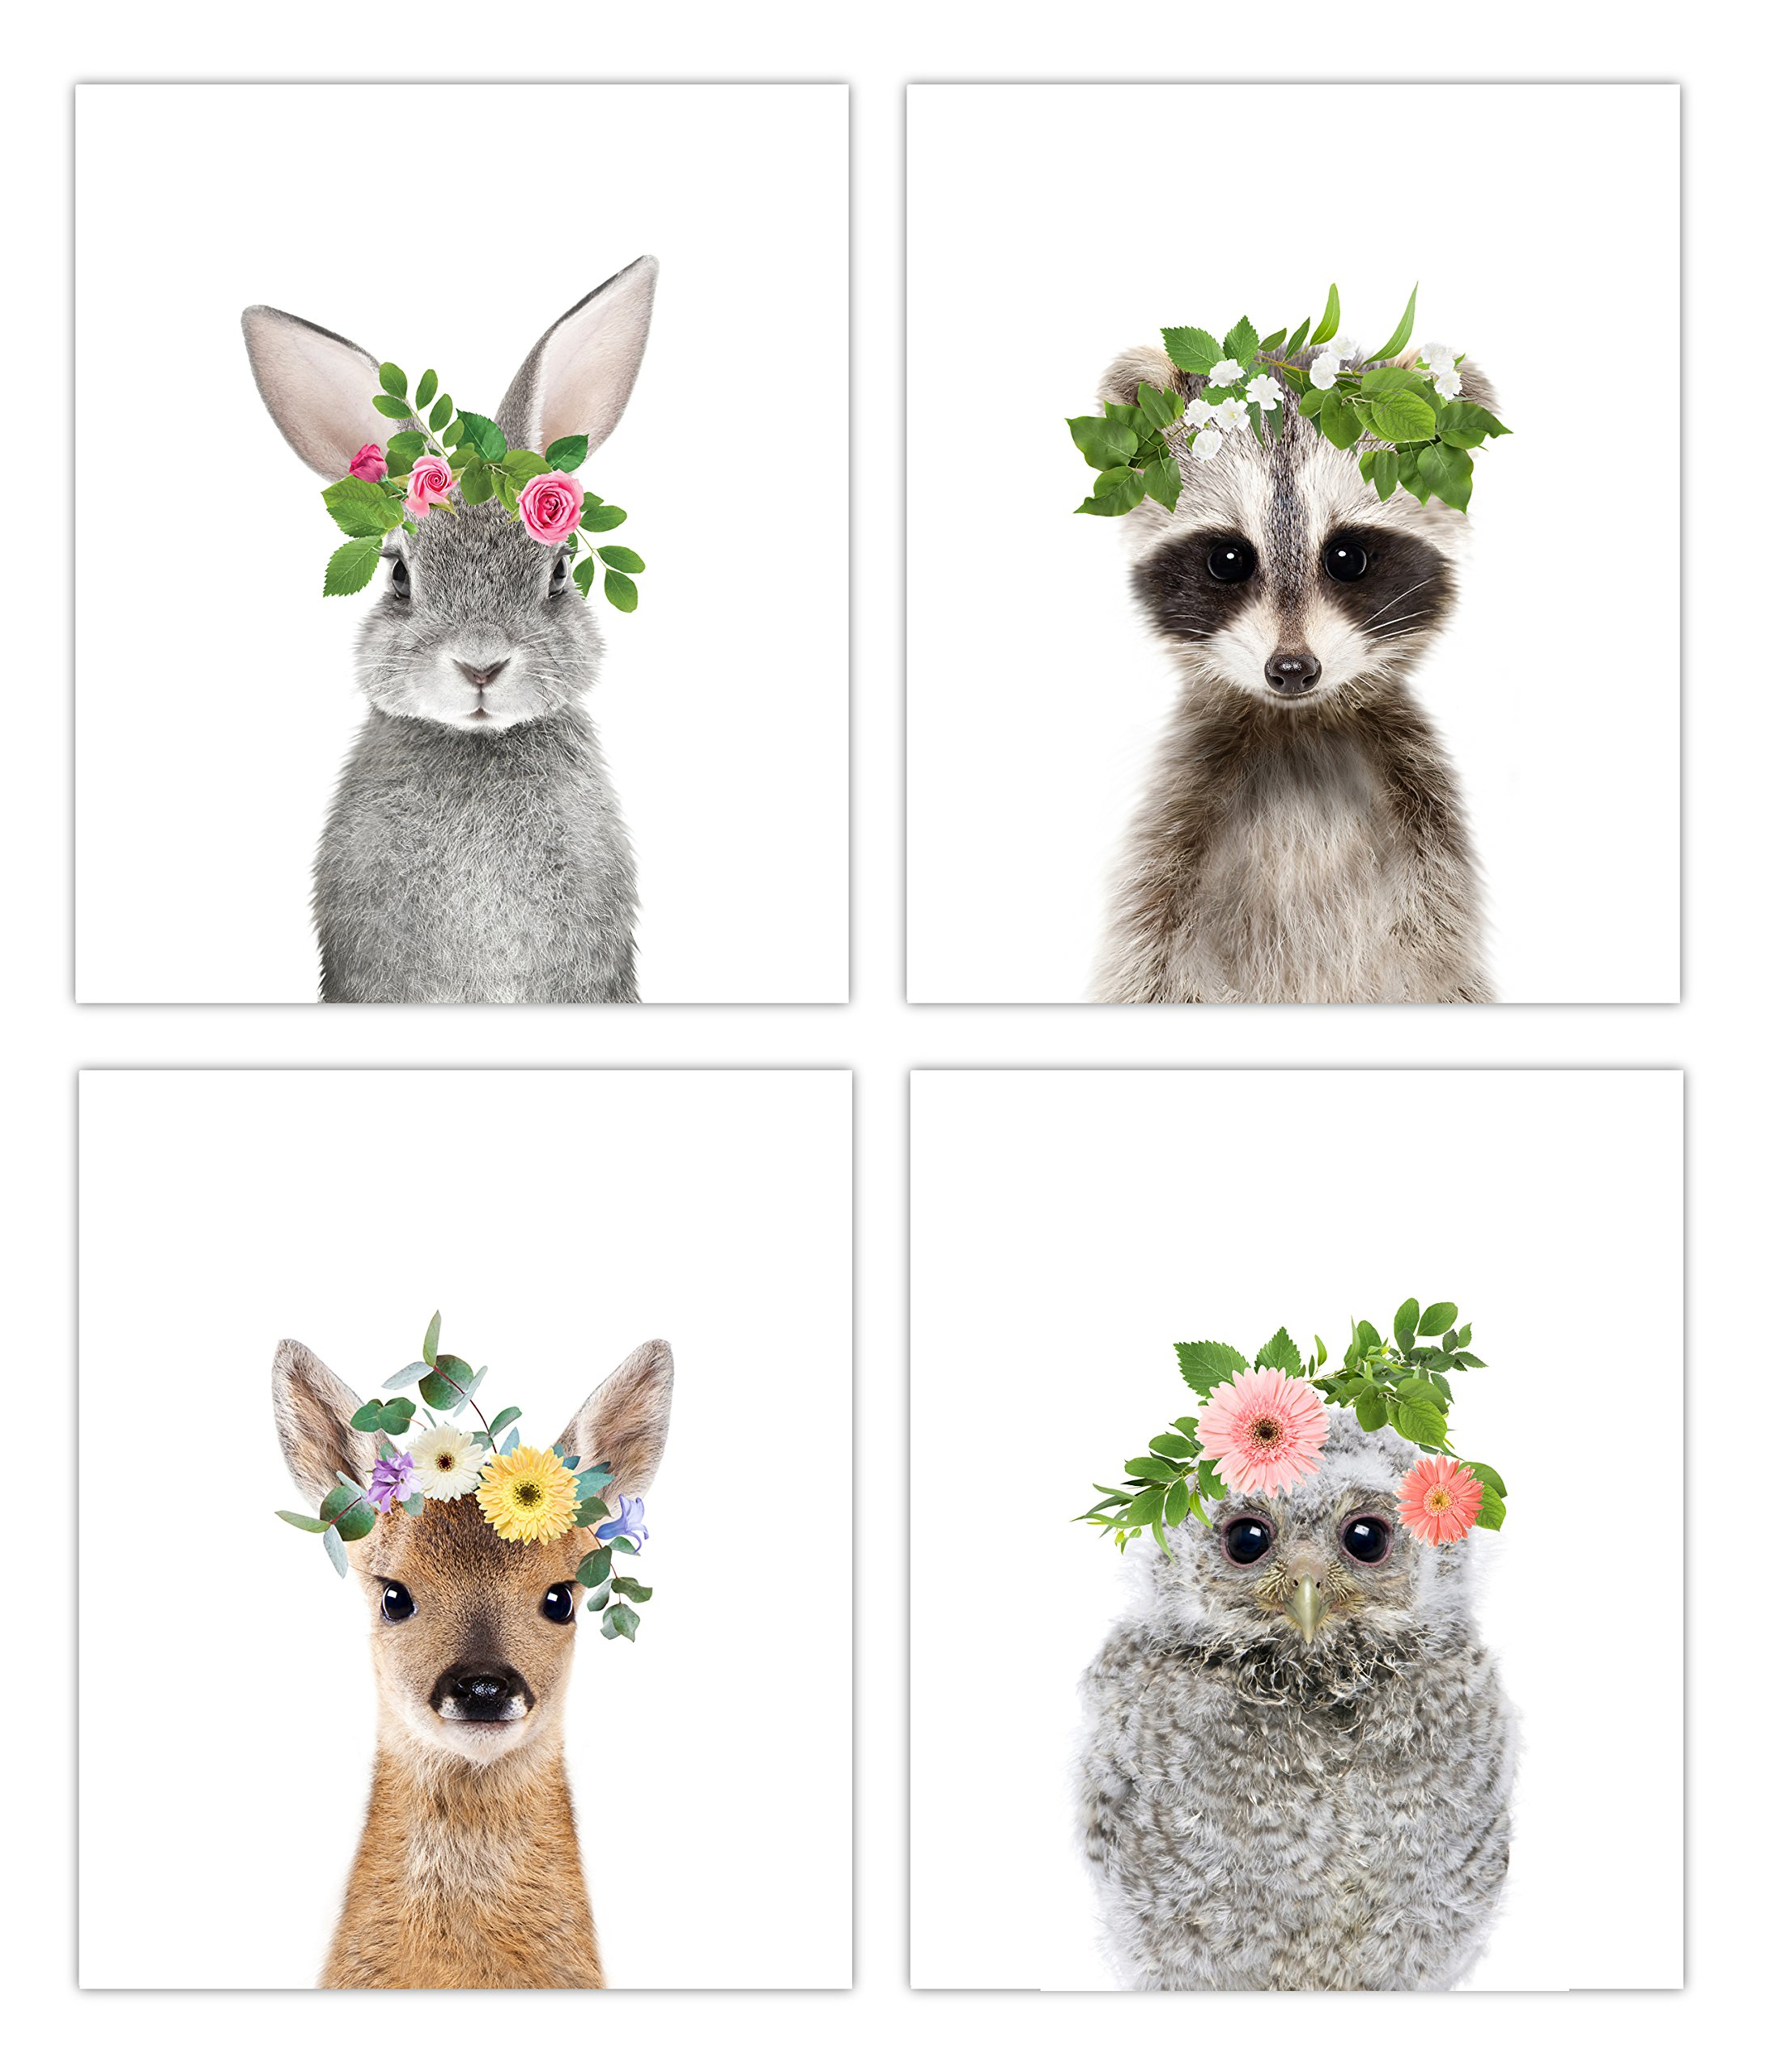 Baby Animals With Floral Crown Nursery Decor Art - Set of 4 UNFRAMED Wall Prints 8x10